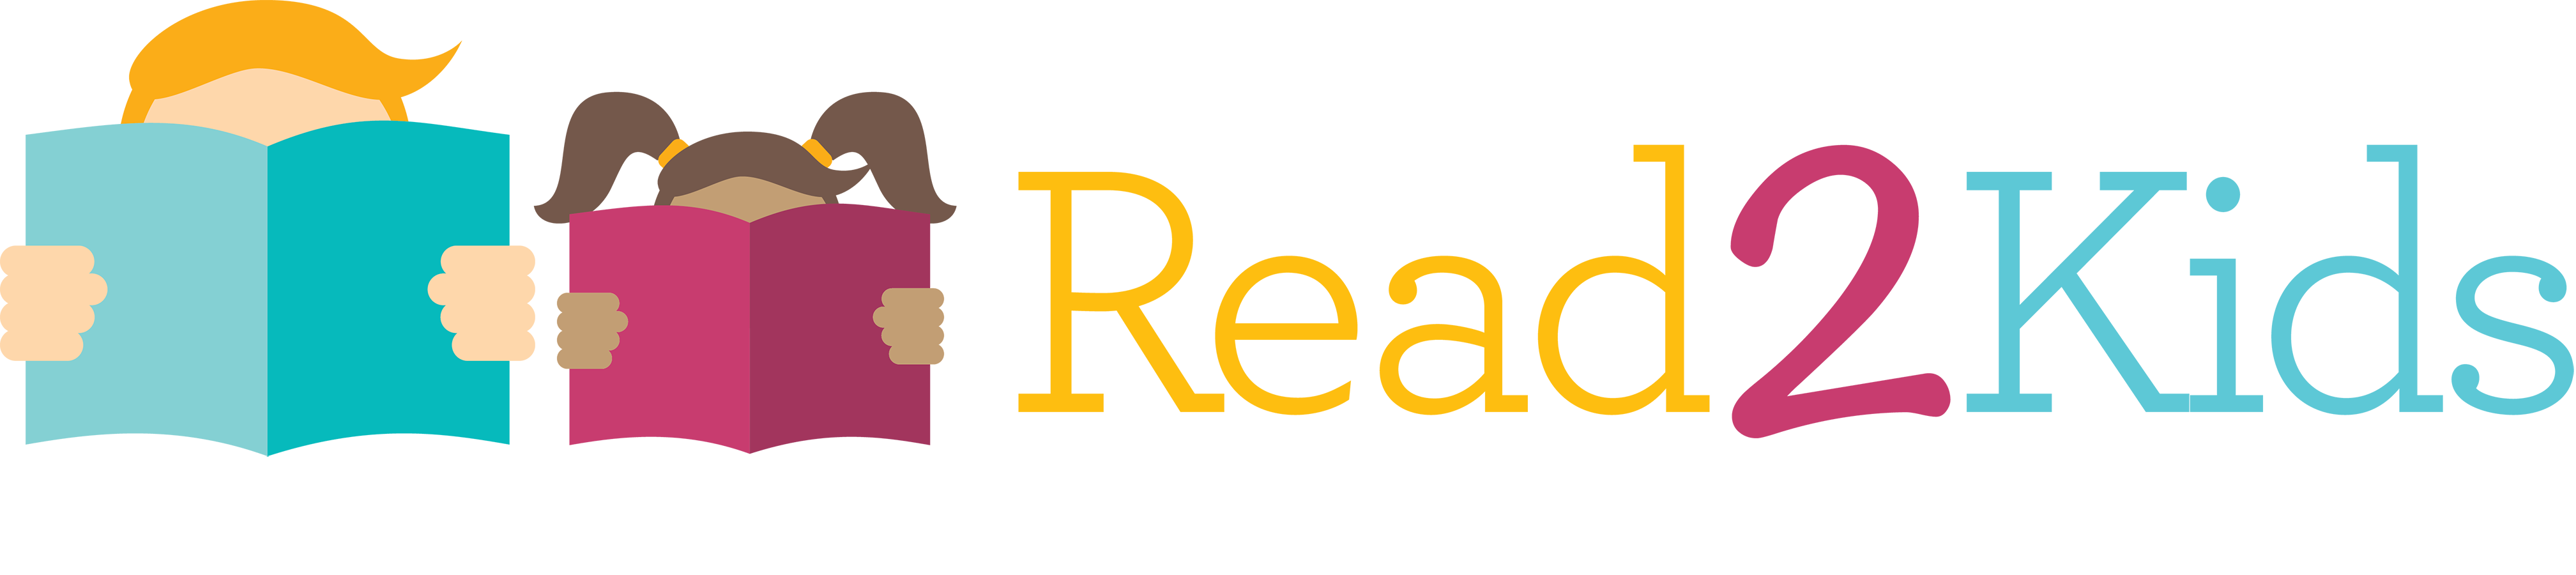 read2kids-logo-hrzntl